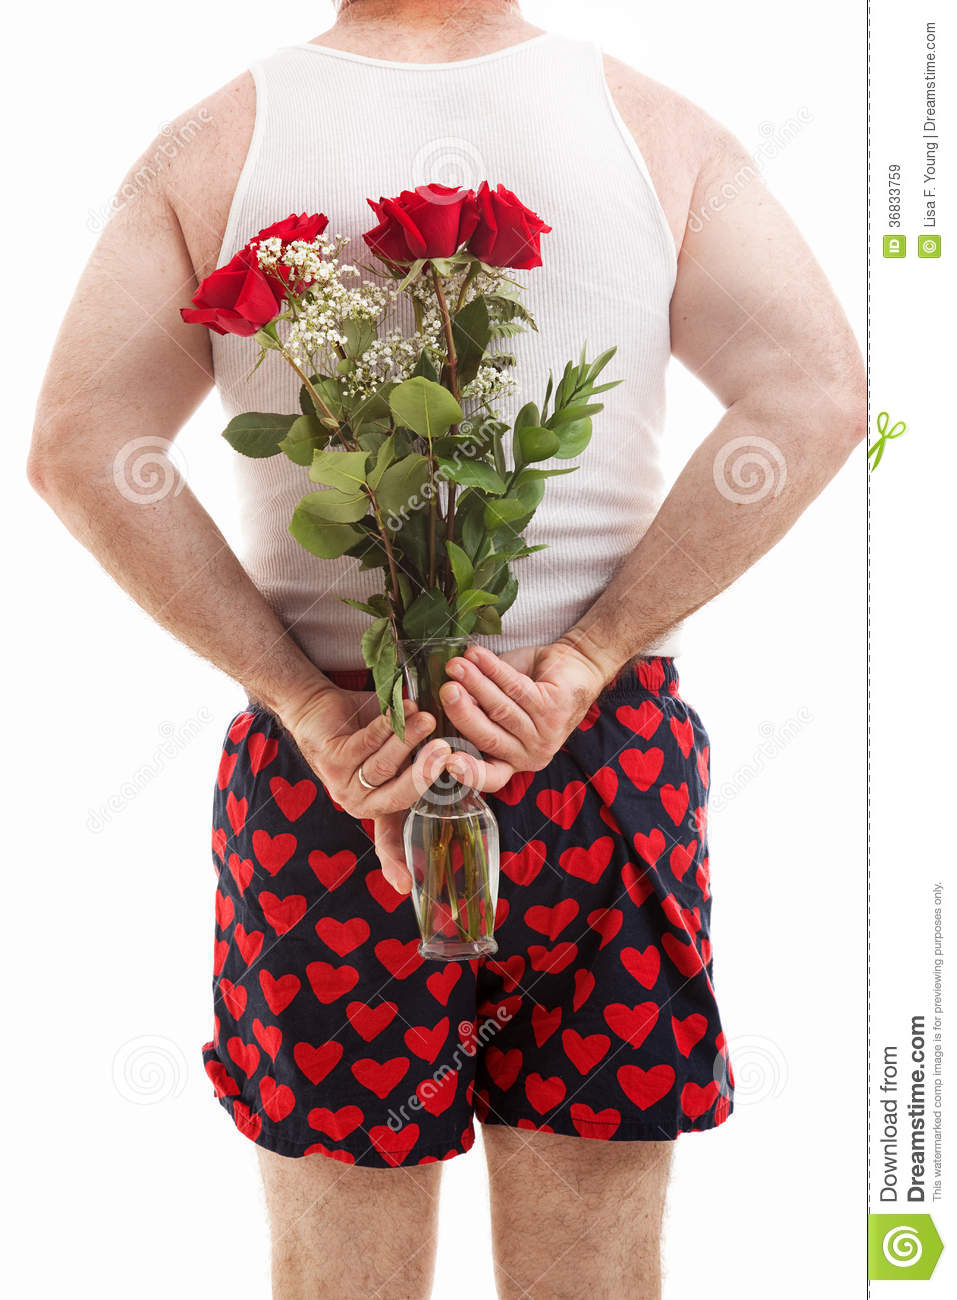 Valentines Guy In Underwear With Roses Royalty Free Stock